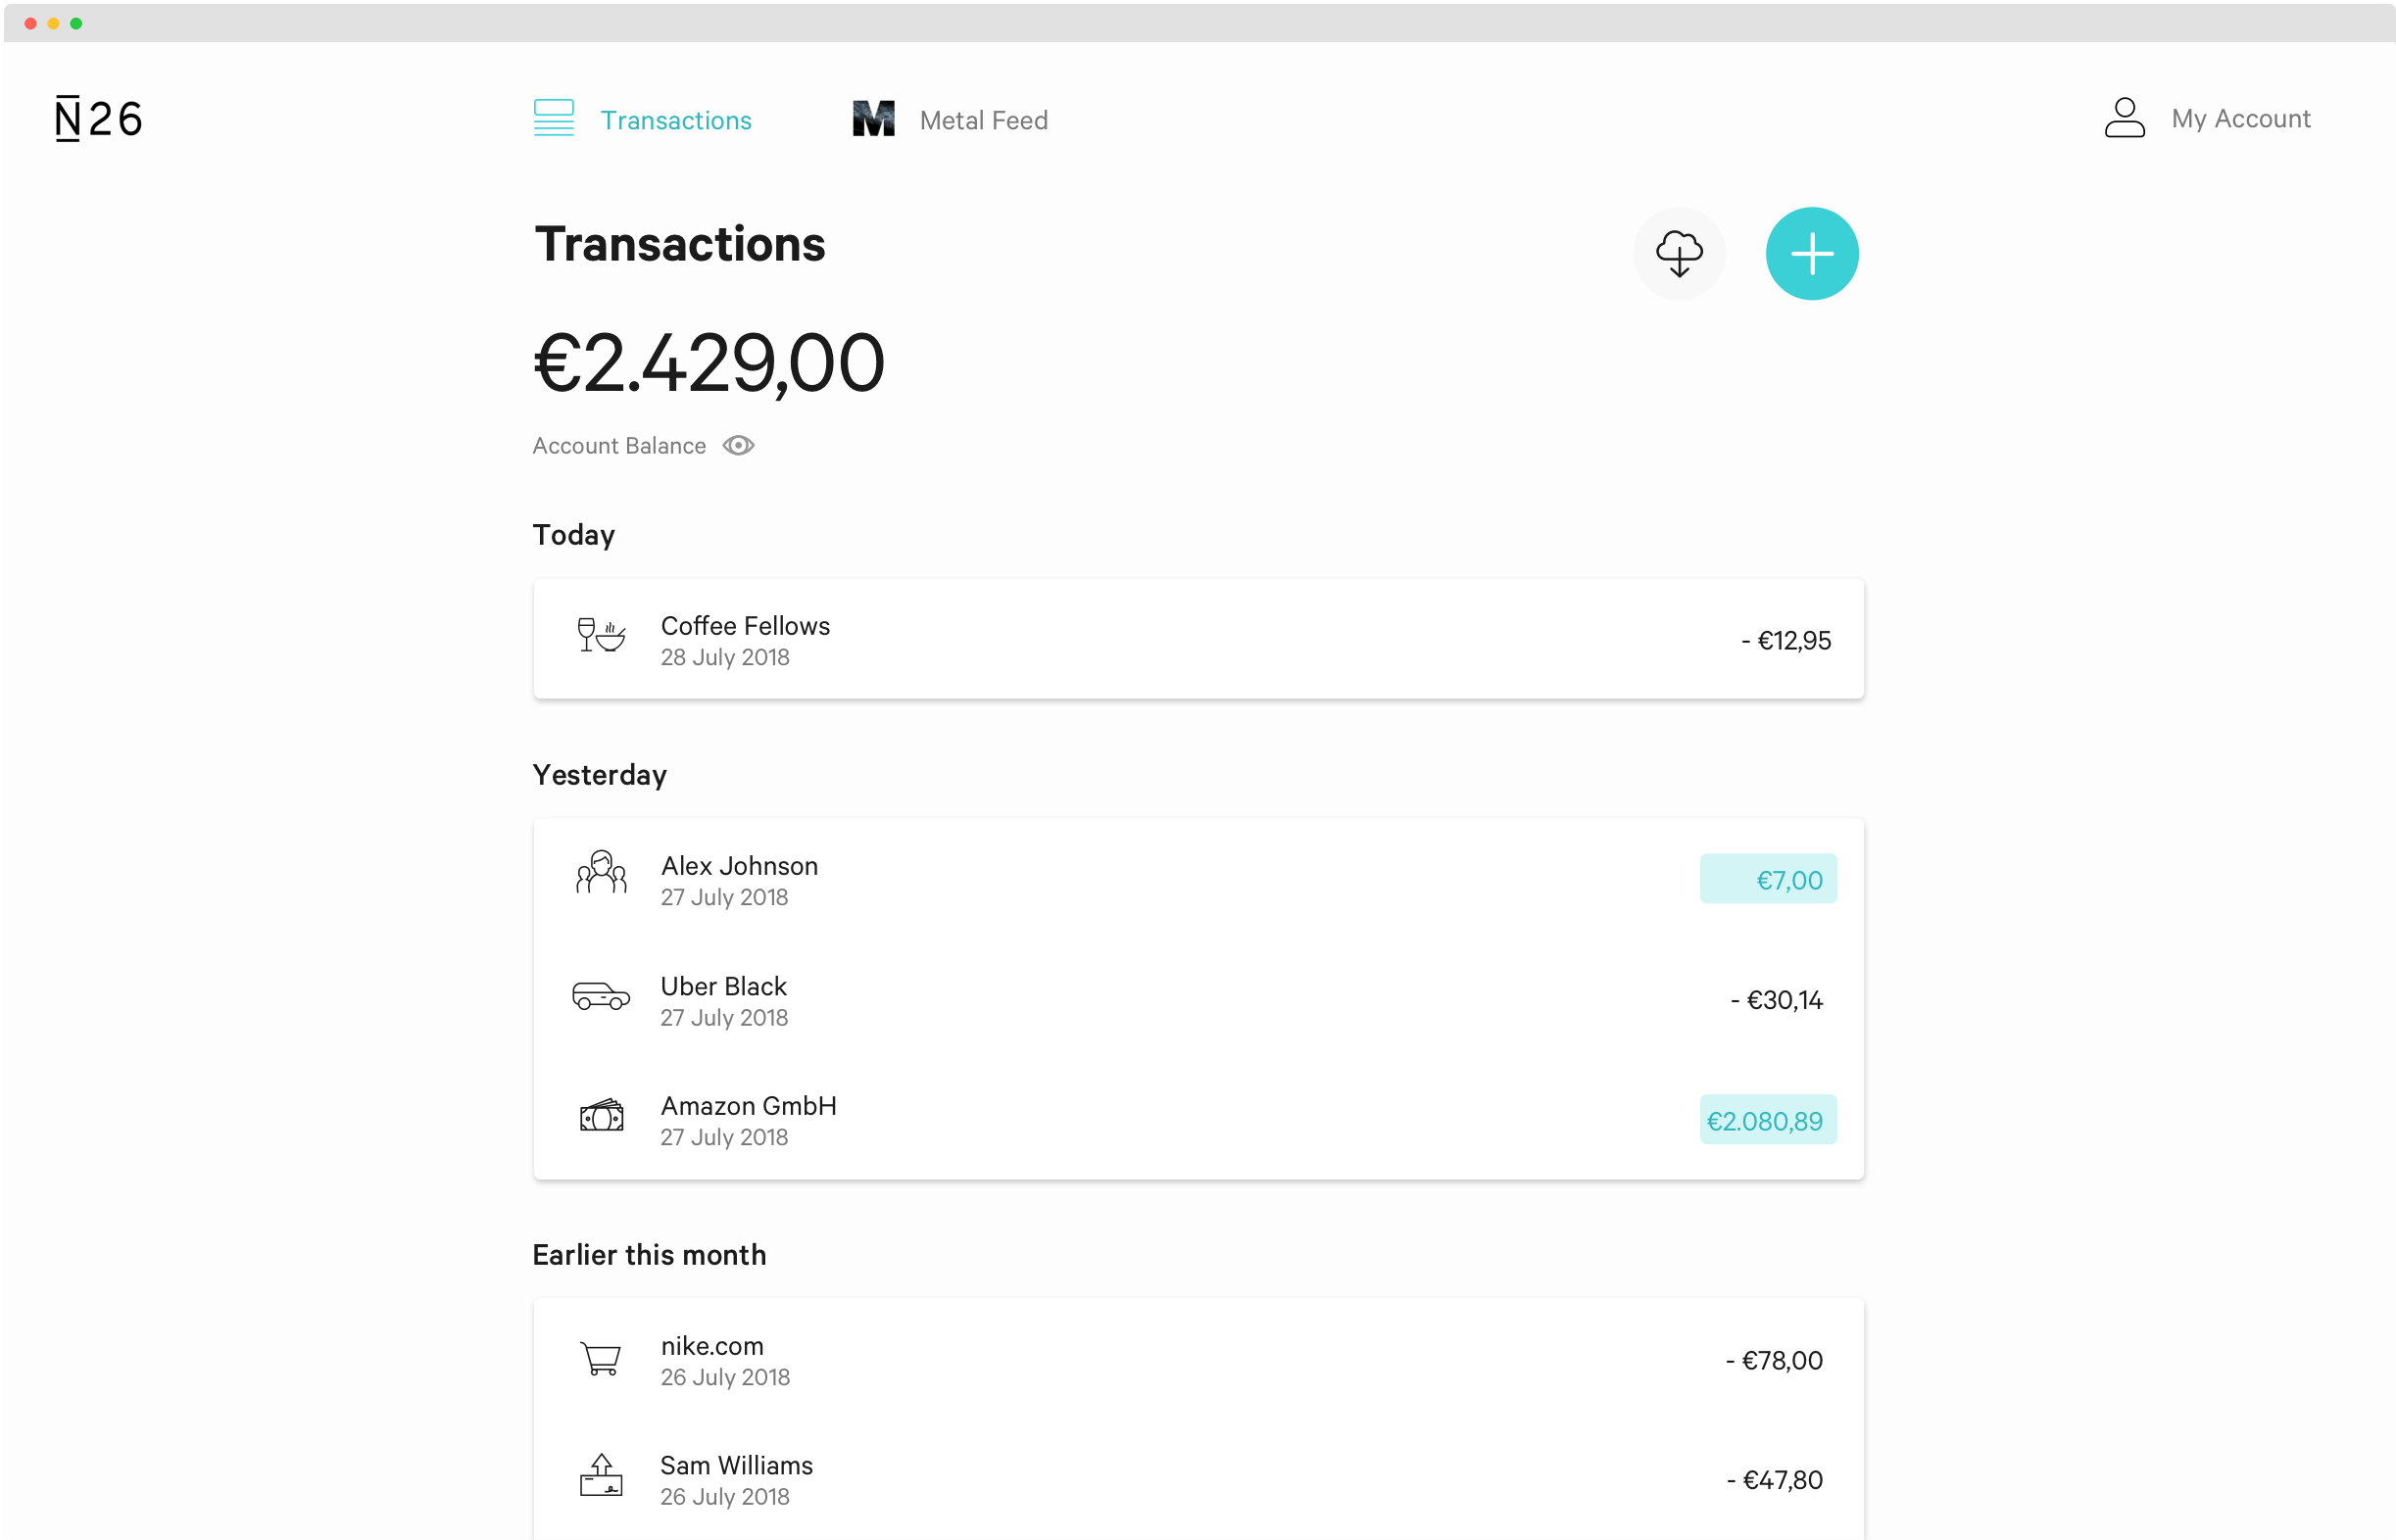 N26 Web App Light Theme